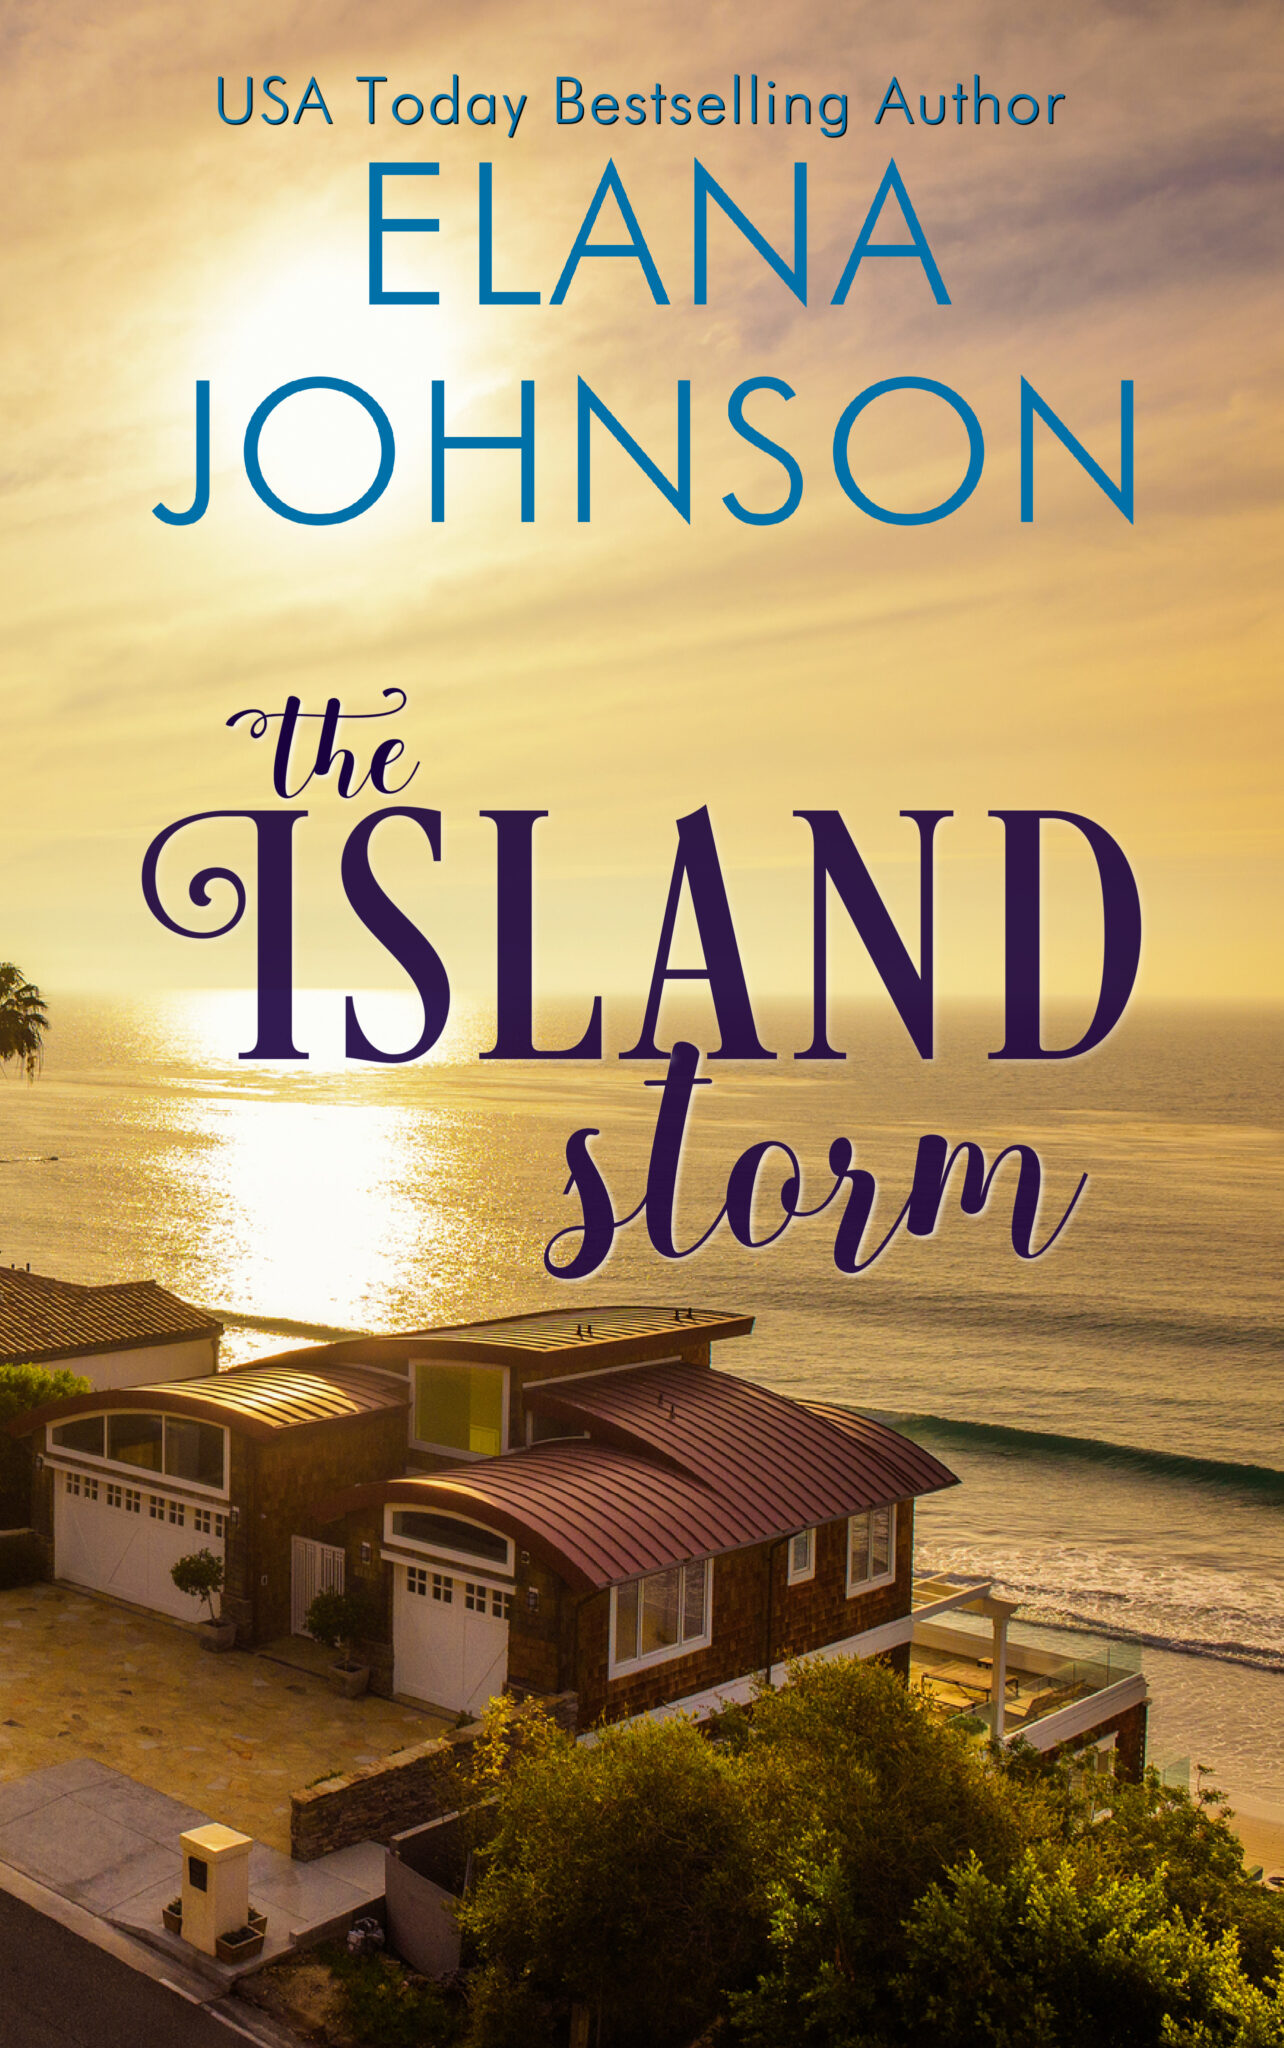 The Island Storm NEW Cover copy